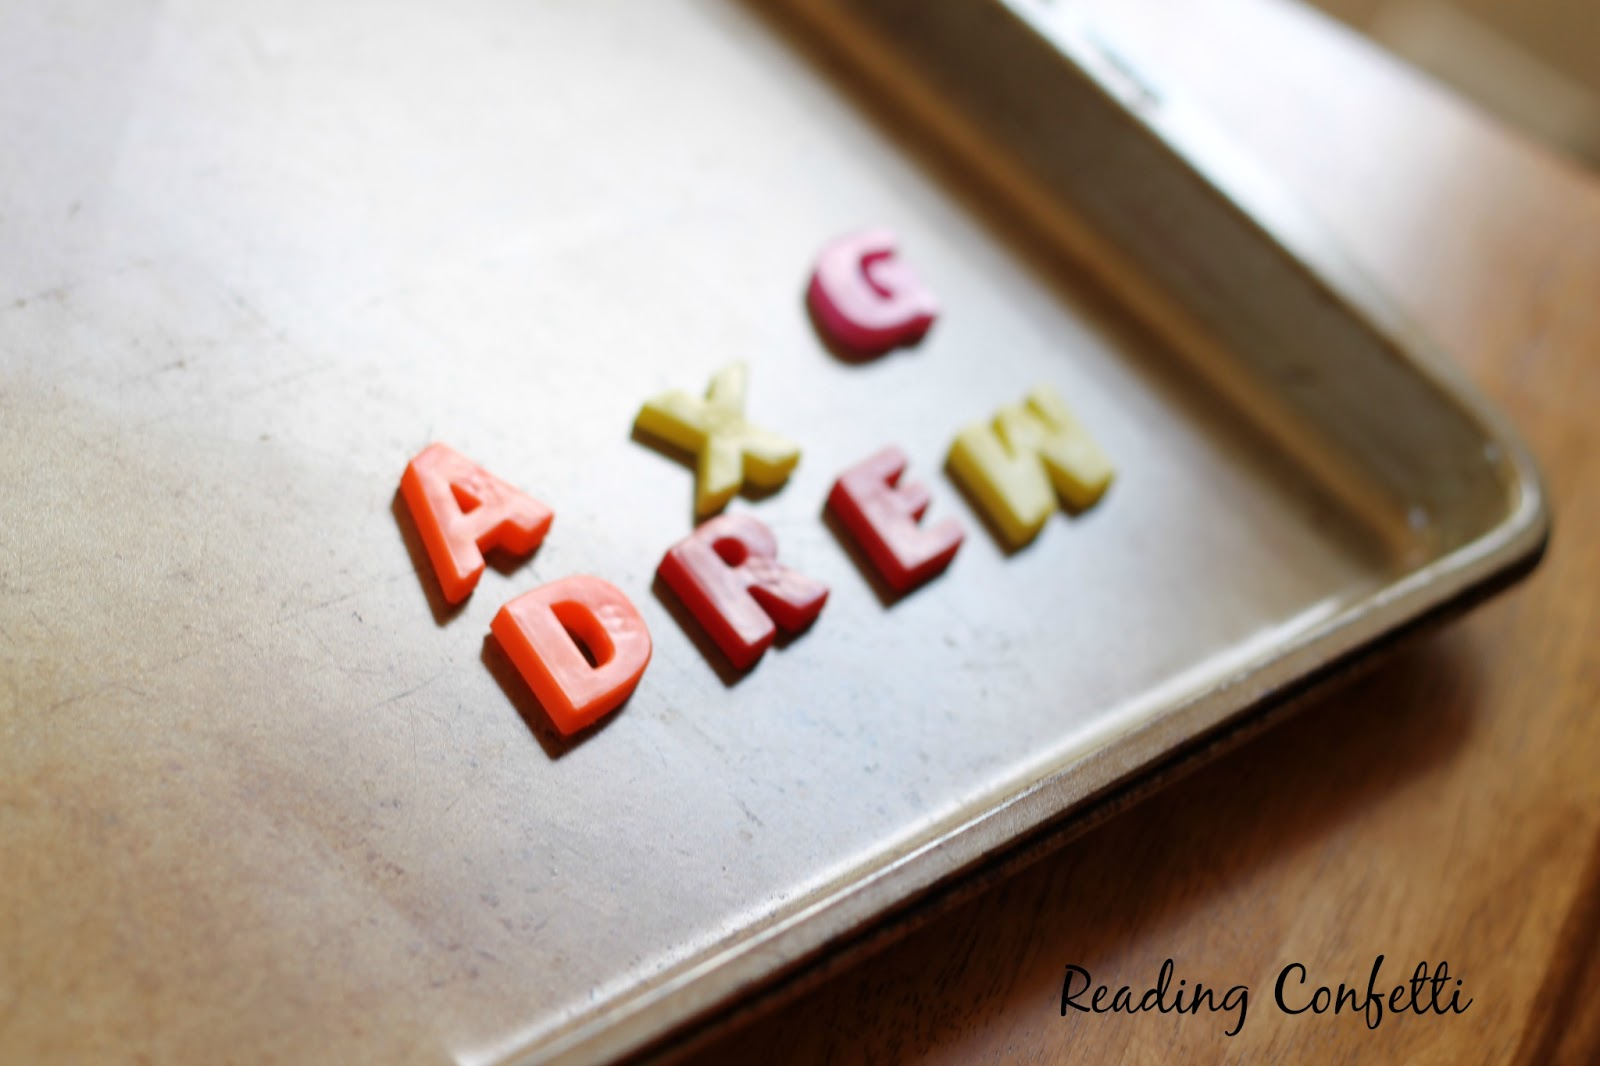 Magnetic alphabet games kids can play to practice letter recognition